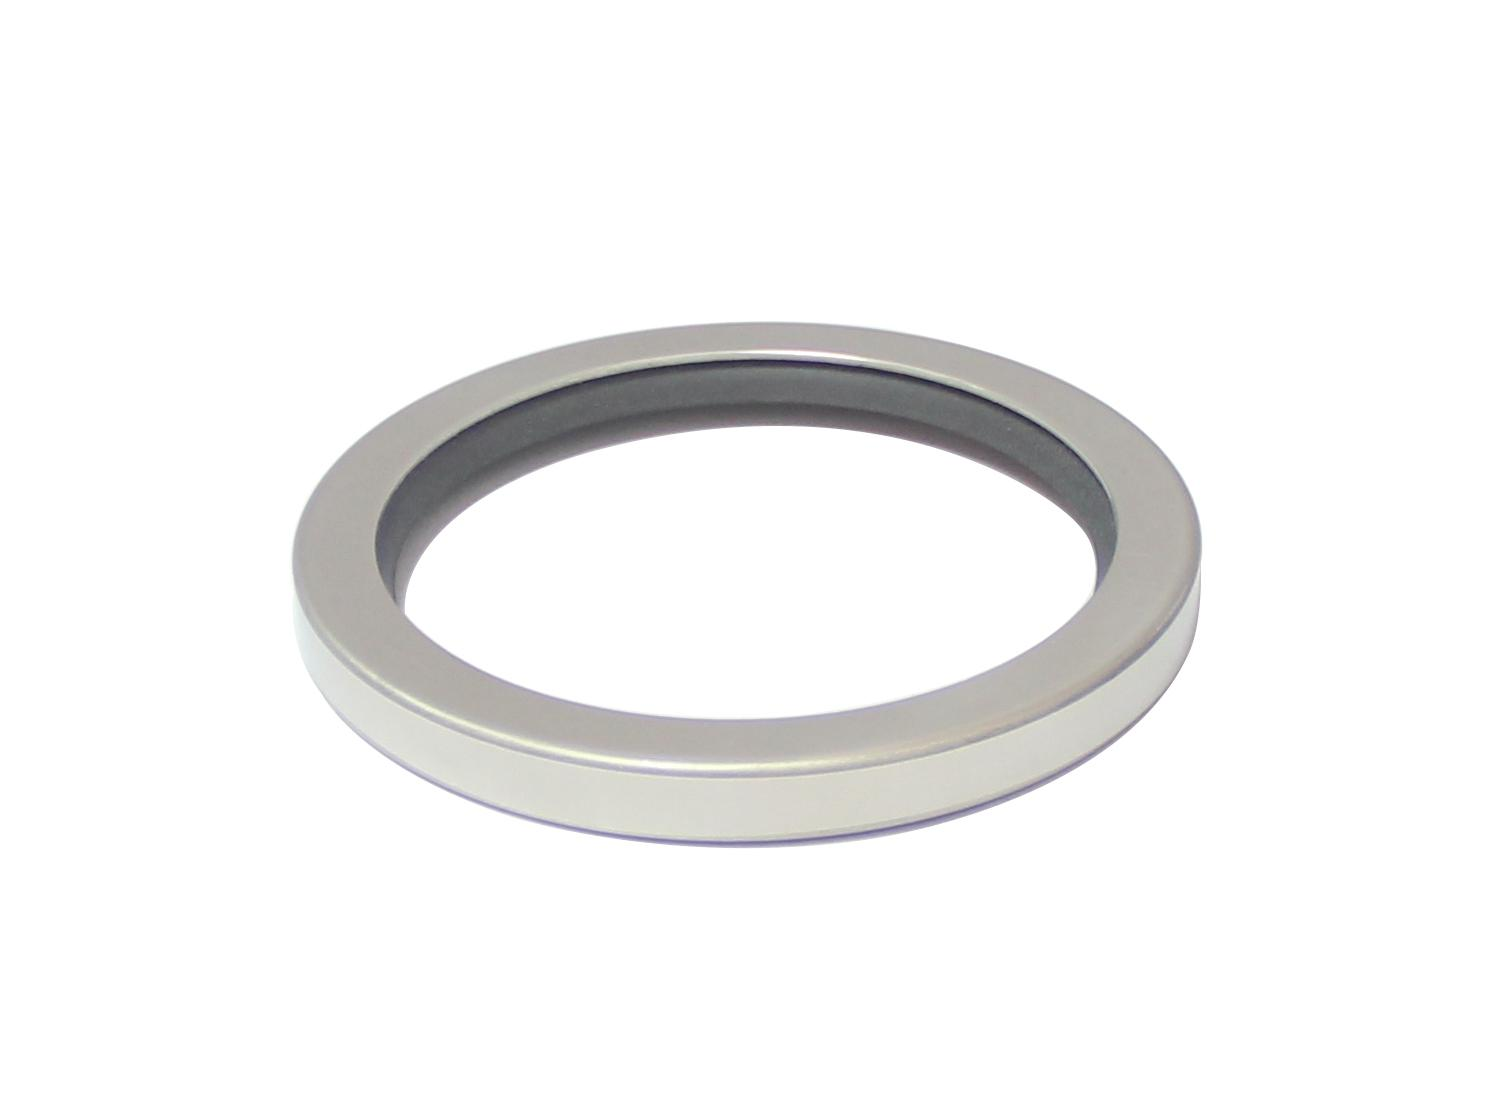 DSH-Oil Seal Types, Single Lip Ptfe Stainless Steel Rotary Shaft Seal-2